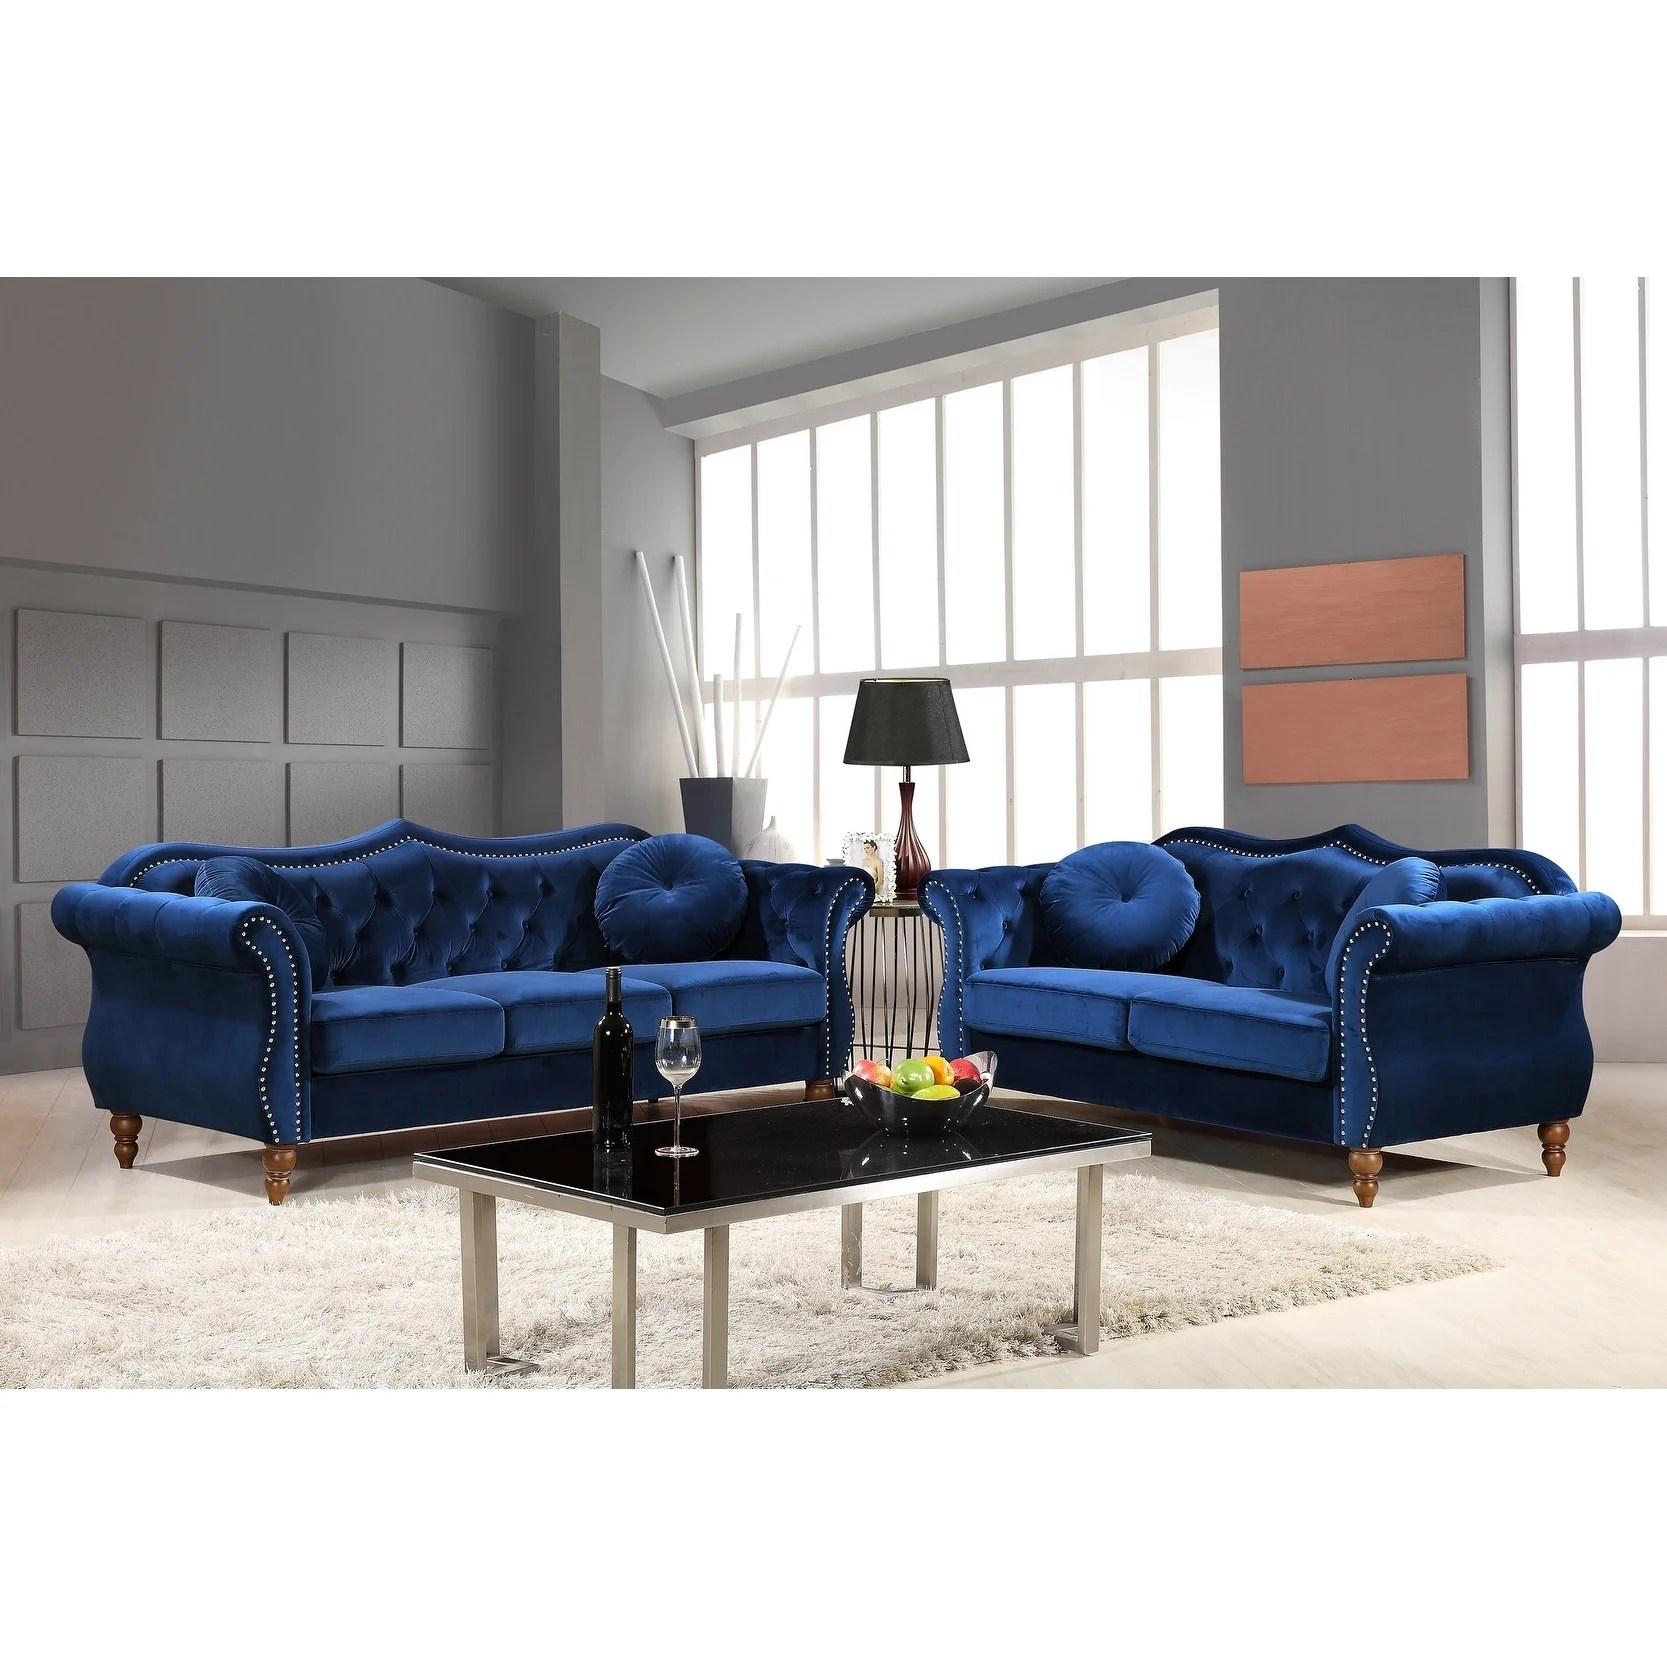 Sofa Entertainment Group Llc Buy Blue Living Room Furniture Sets Online At Overstock Our Best